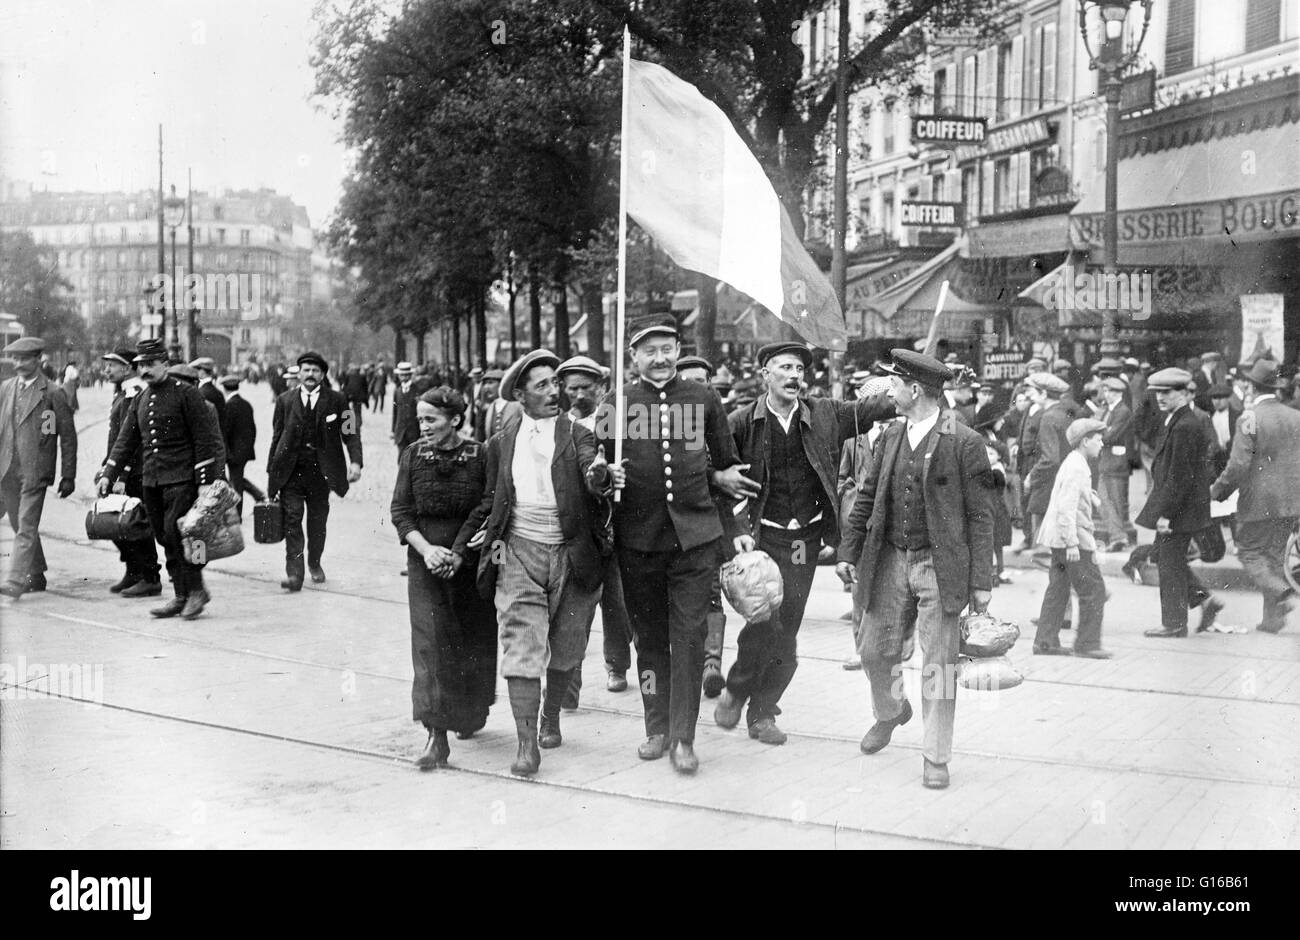 French reservist soldiers marching in front of the Brasserie Bougeneaux (9 Rue de Strasbourg), Paris, France, on - Stock Image